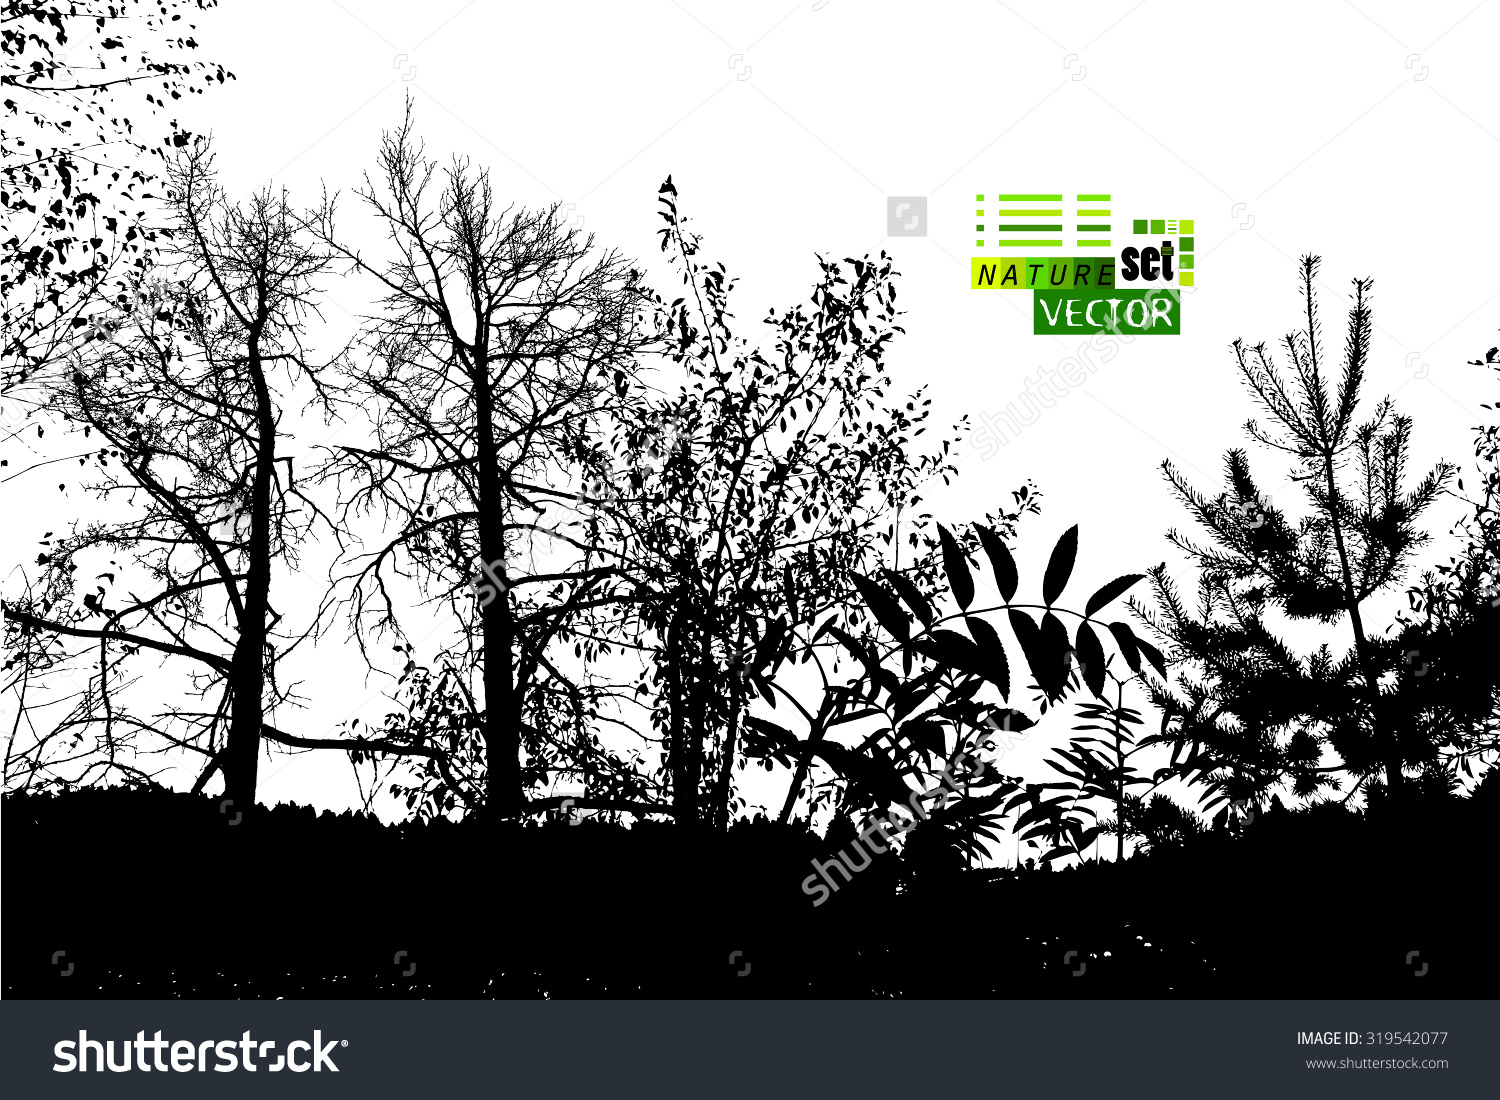 Forest Silhouette Vector Stock Vector 319542077.